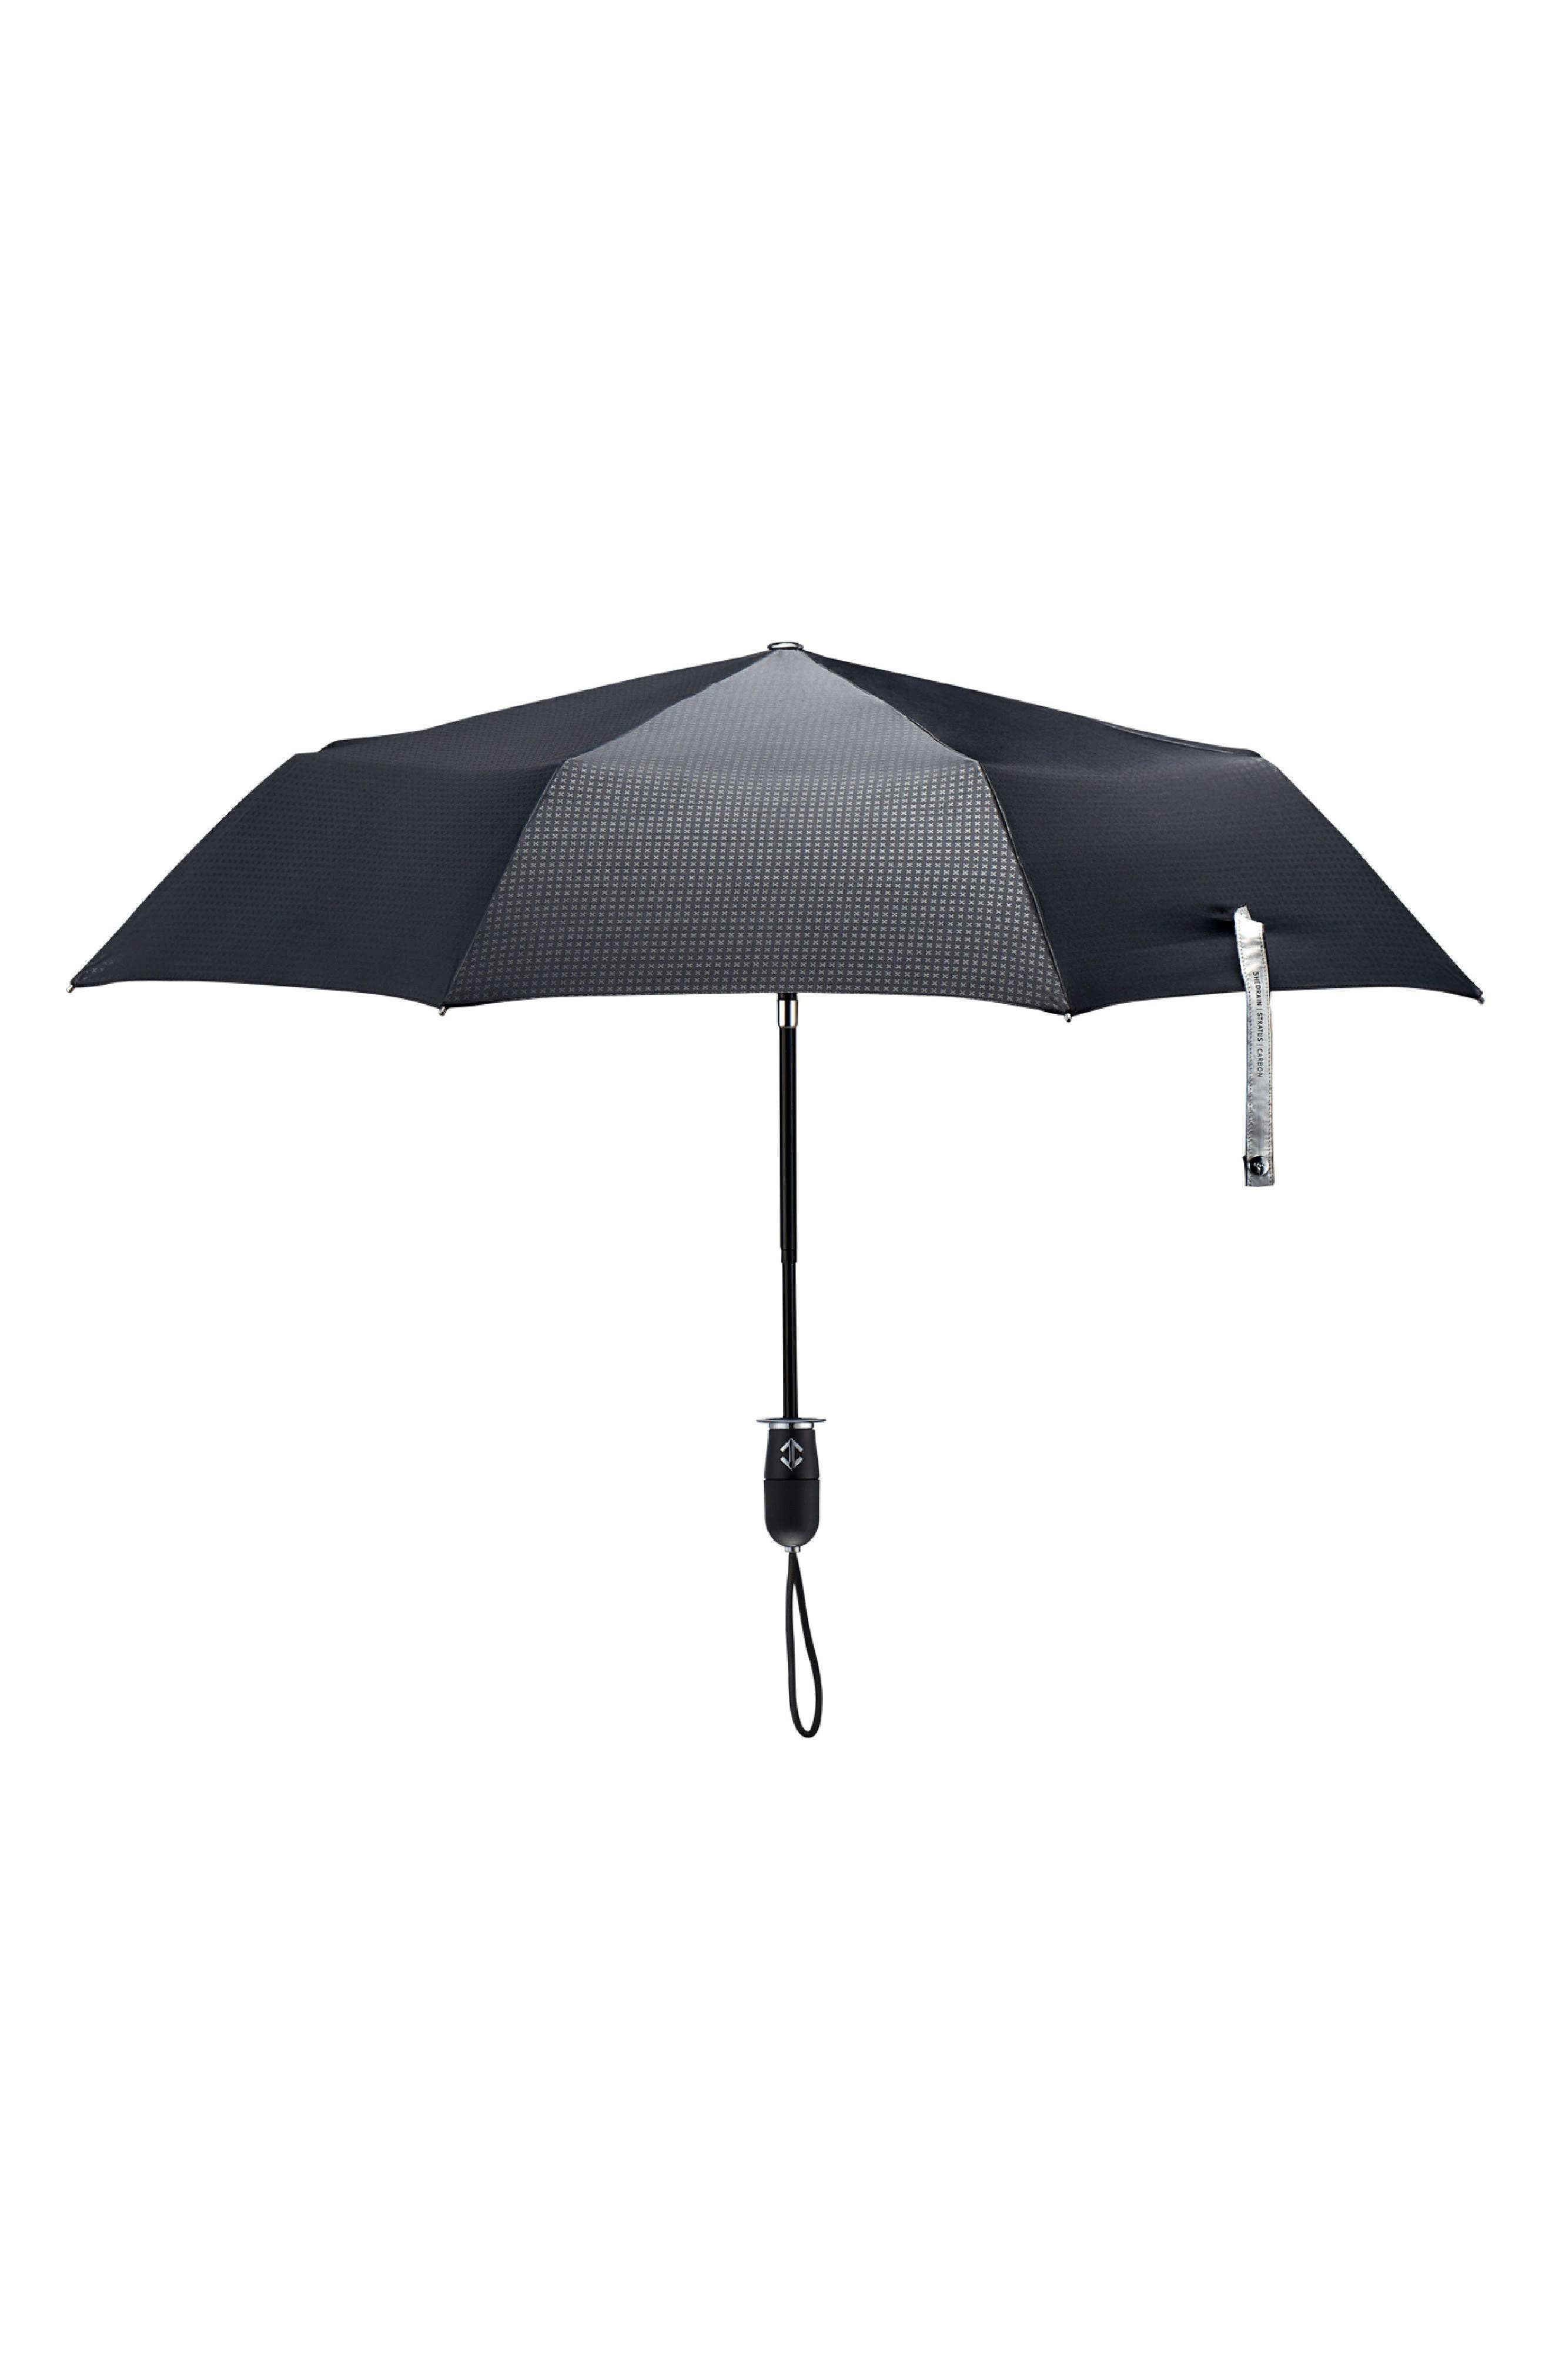 Stratus Auto Open Stick Umbrella,                         Main,                         color, 001